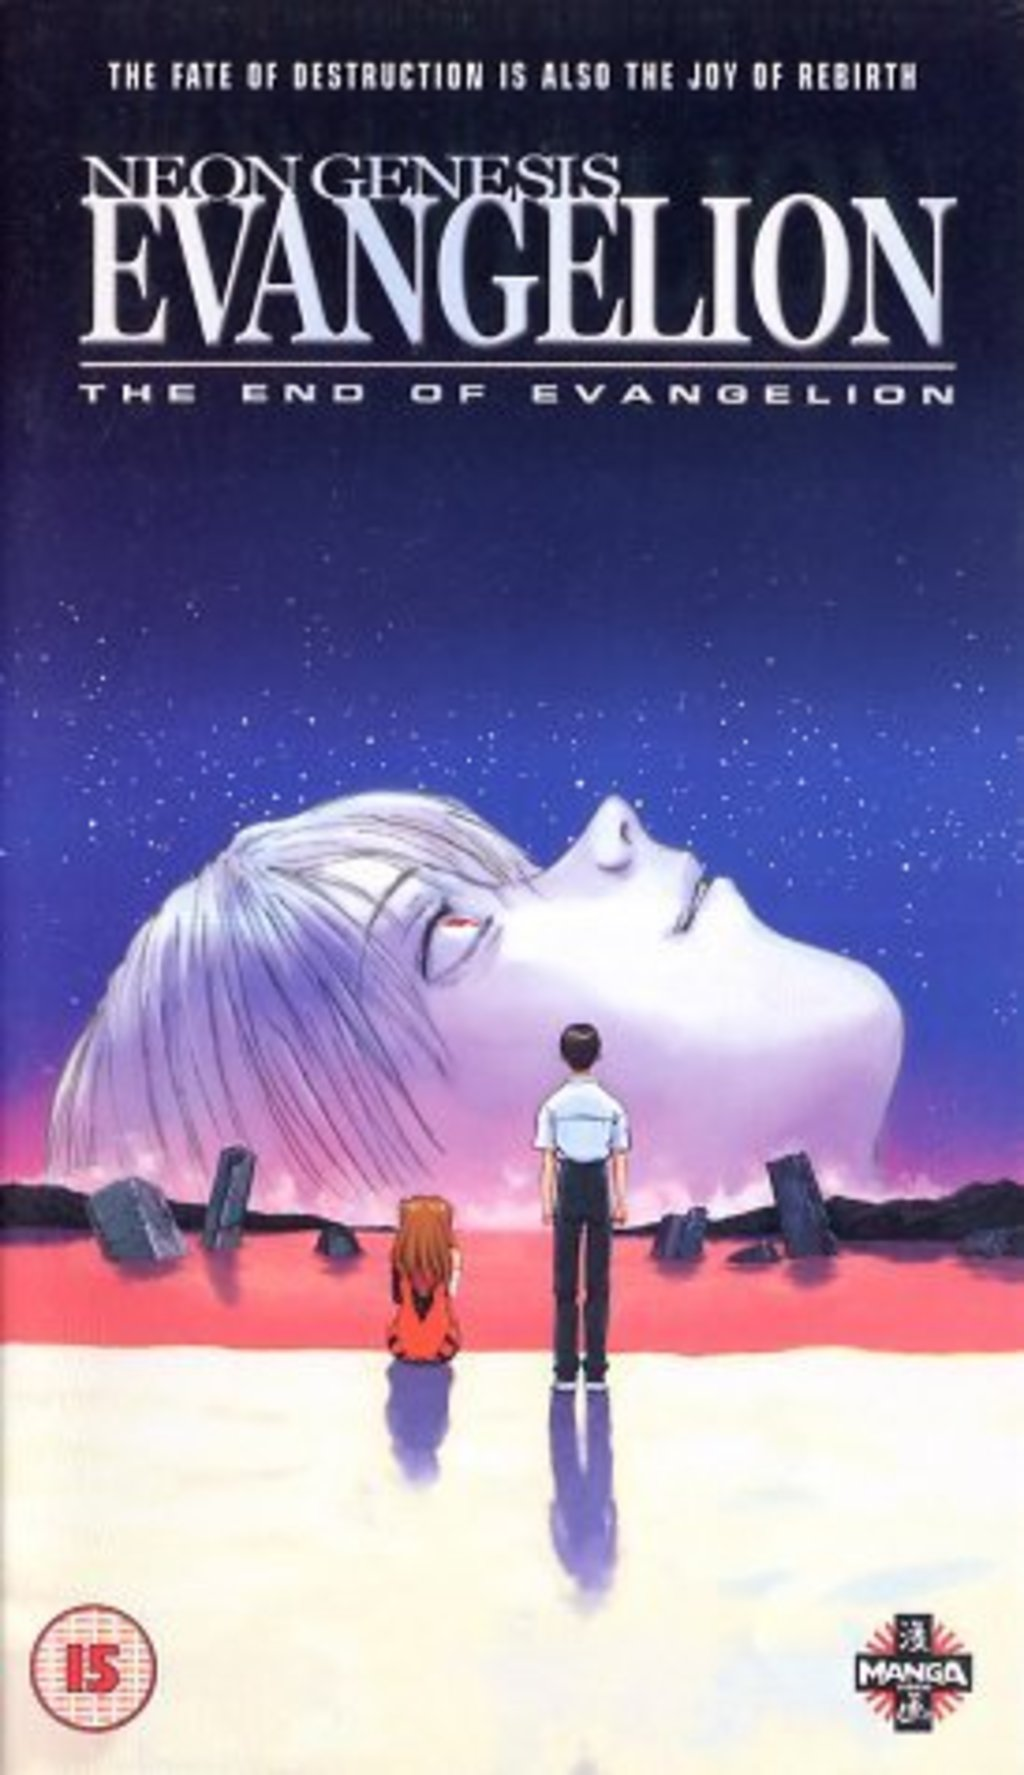 watch neon genesis evangelion the end of evangelion on. Black Bedroom Furniture Sets. Home Design Ideas